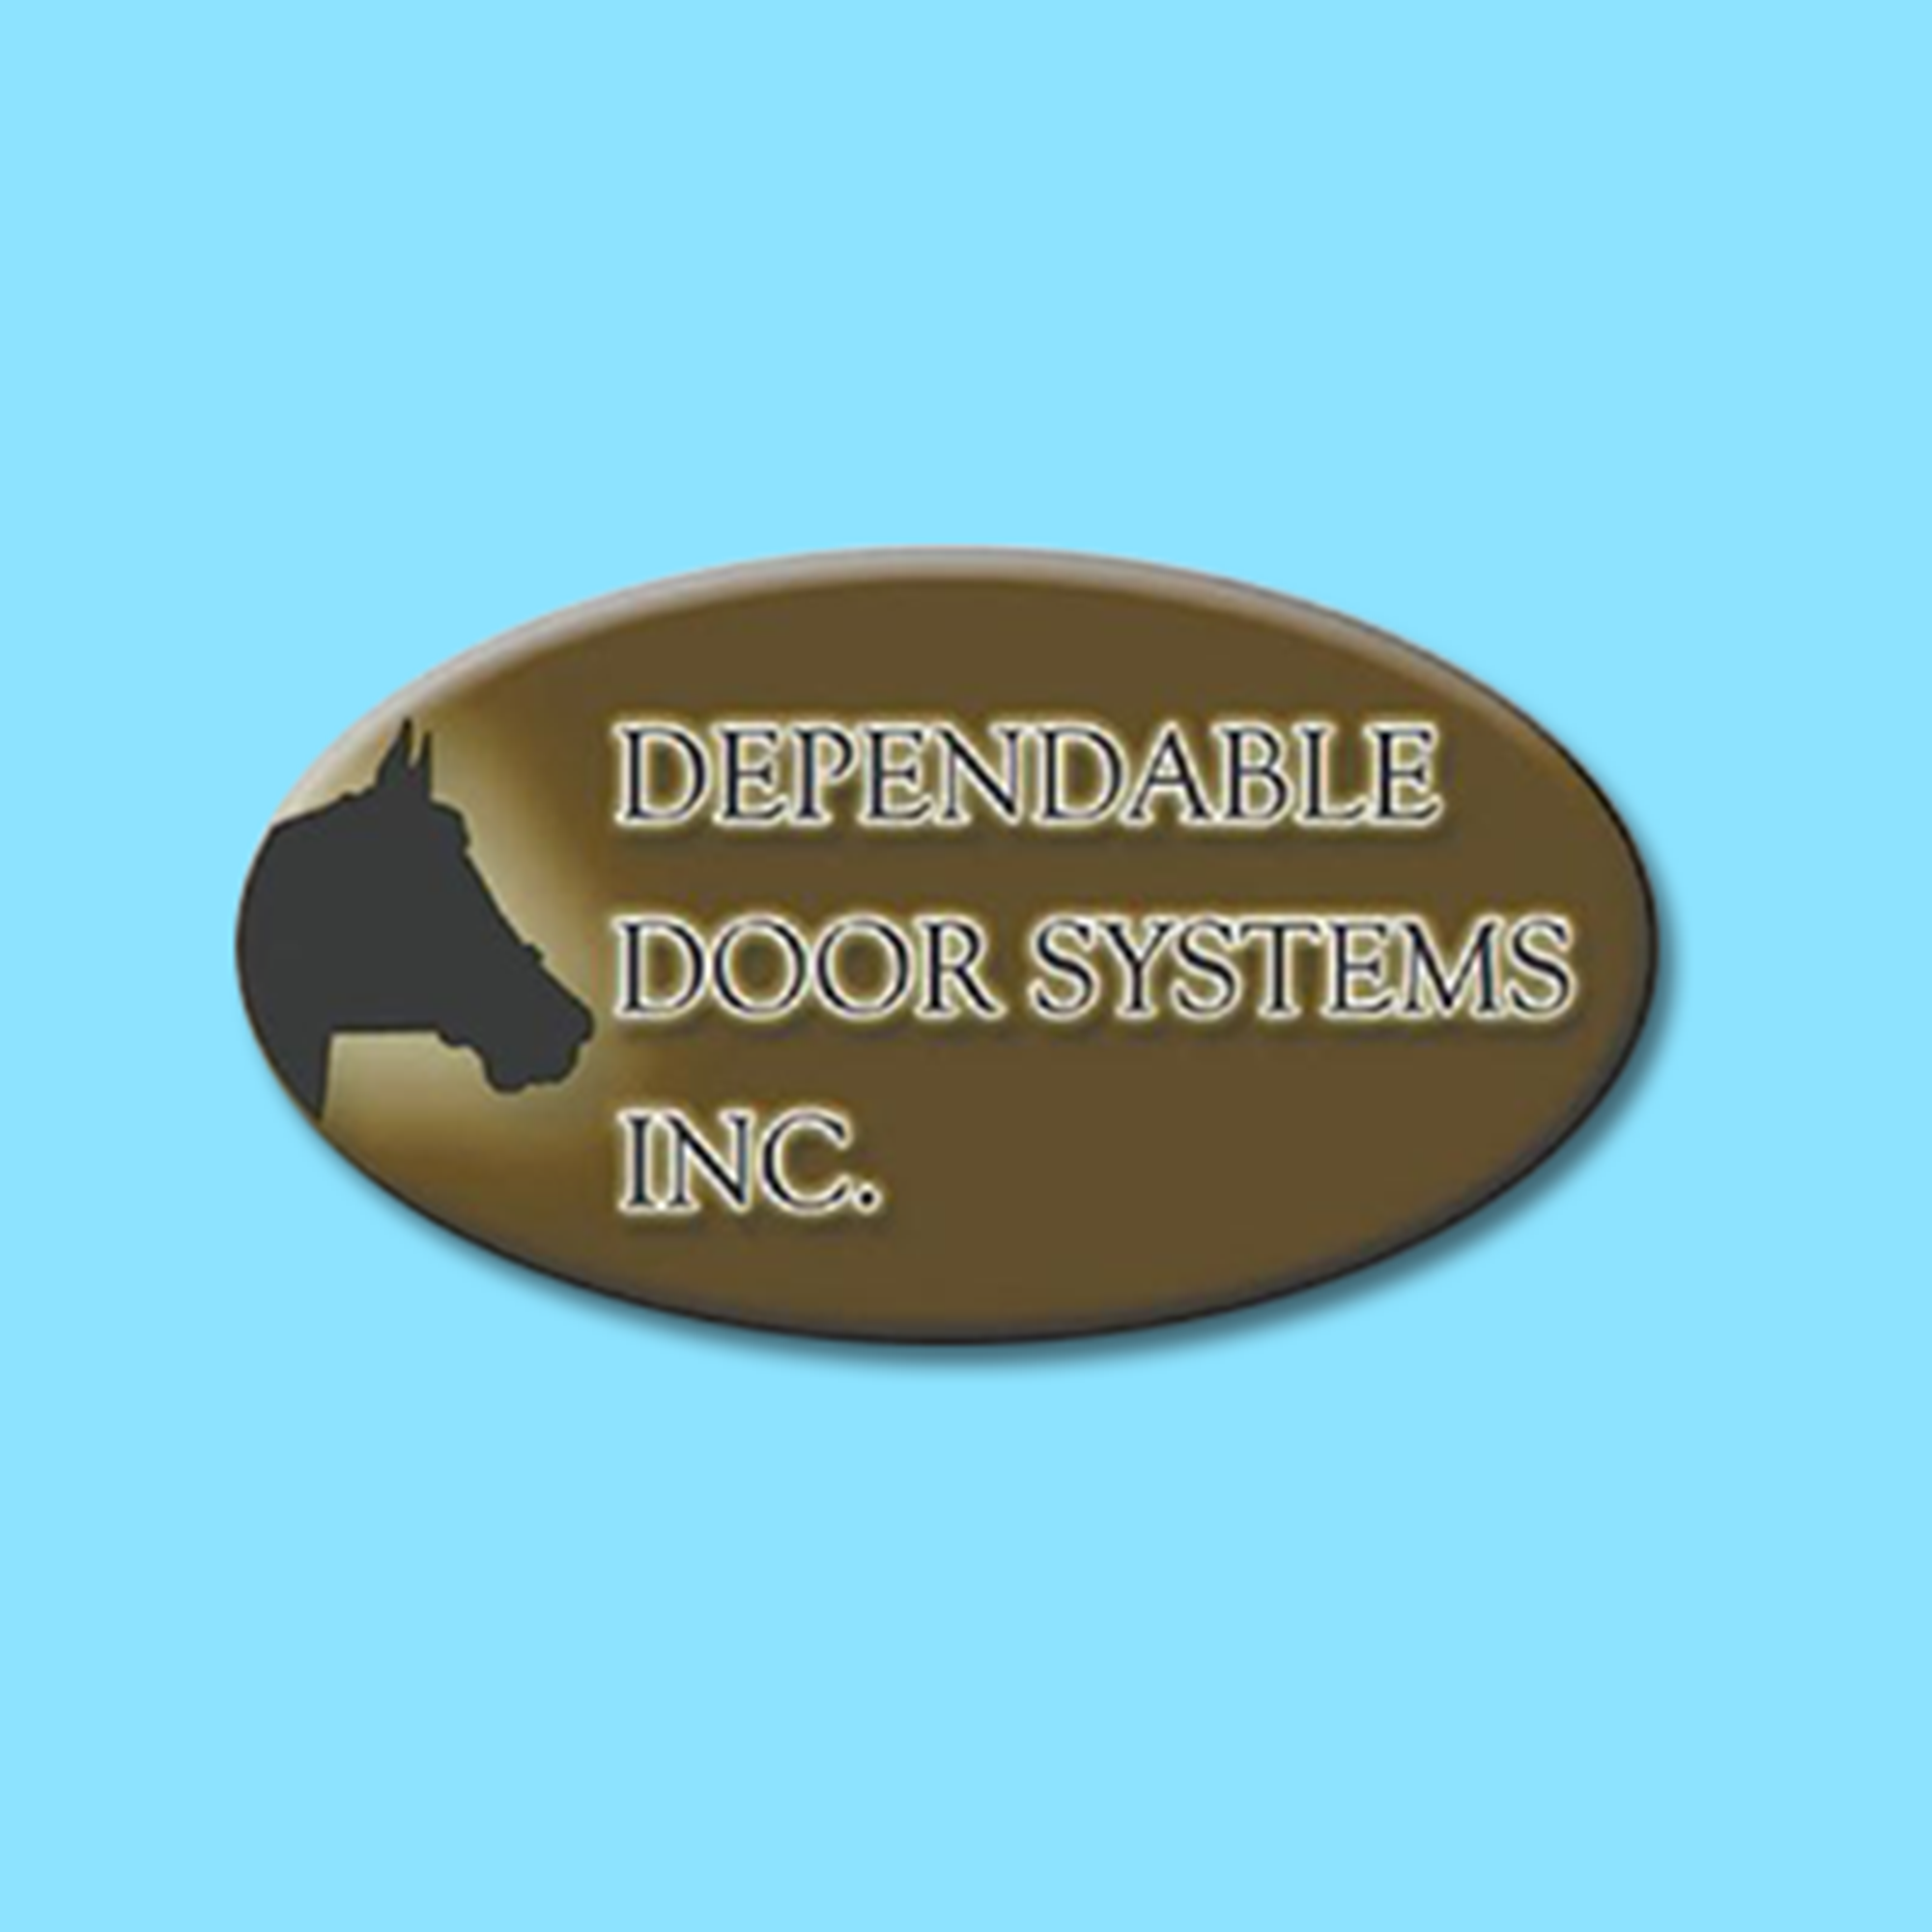 Dependable Door Systems 1932 N Main St Ste 1 Spanish Fork